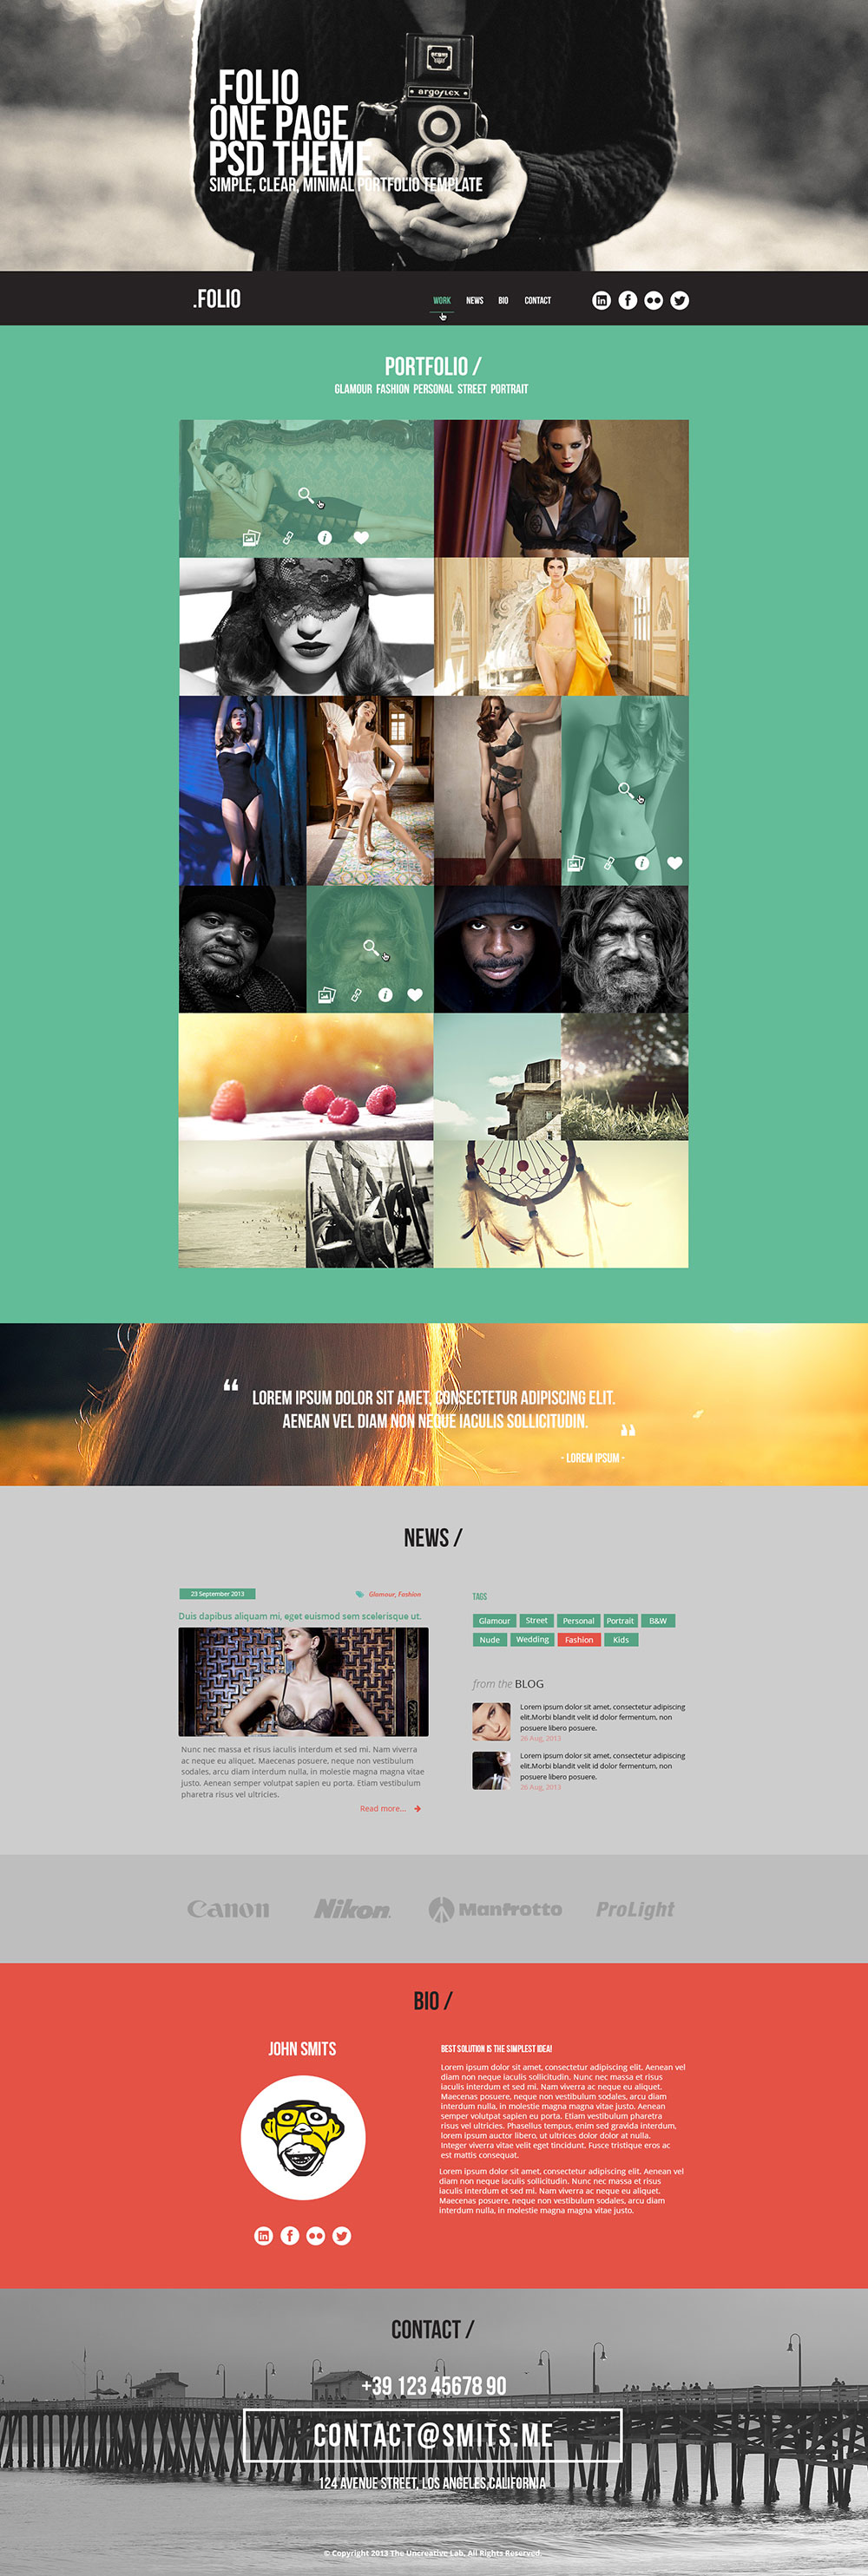 Folio One Page Free HTML Template